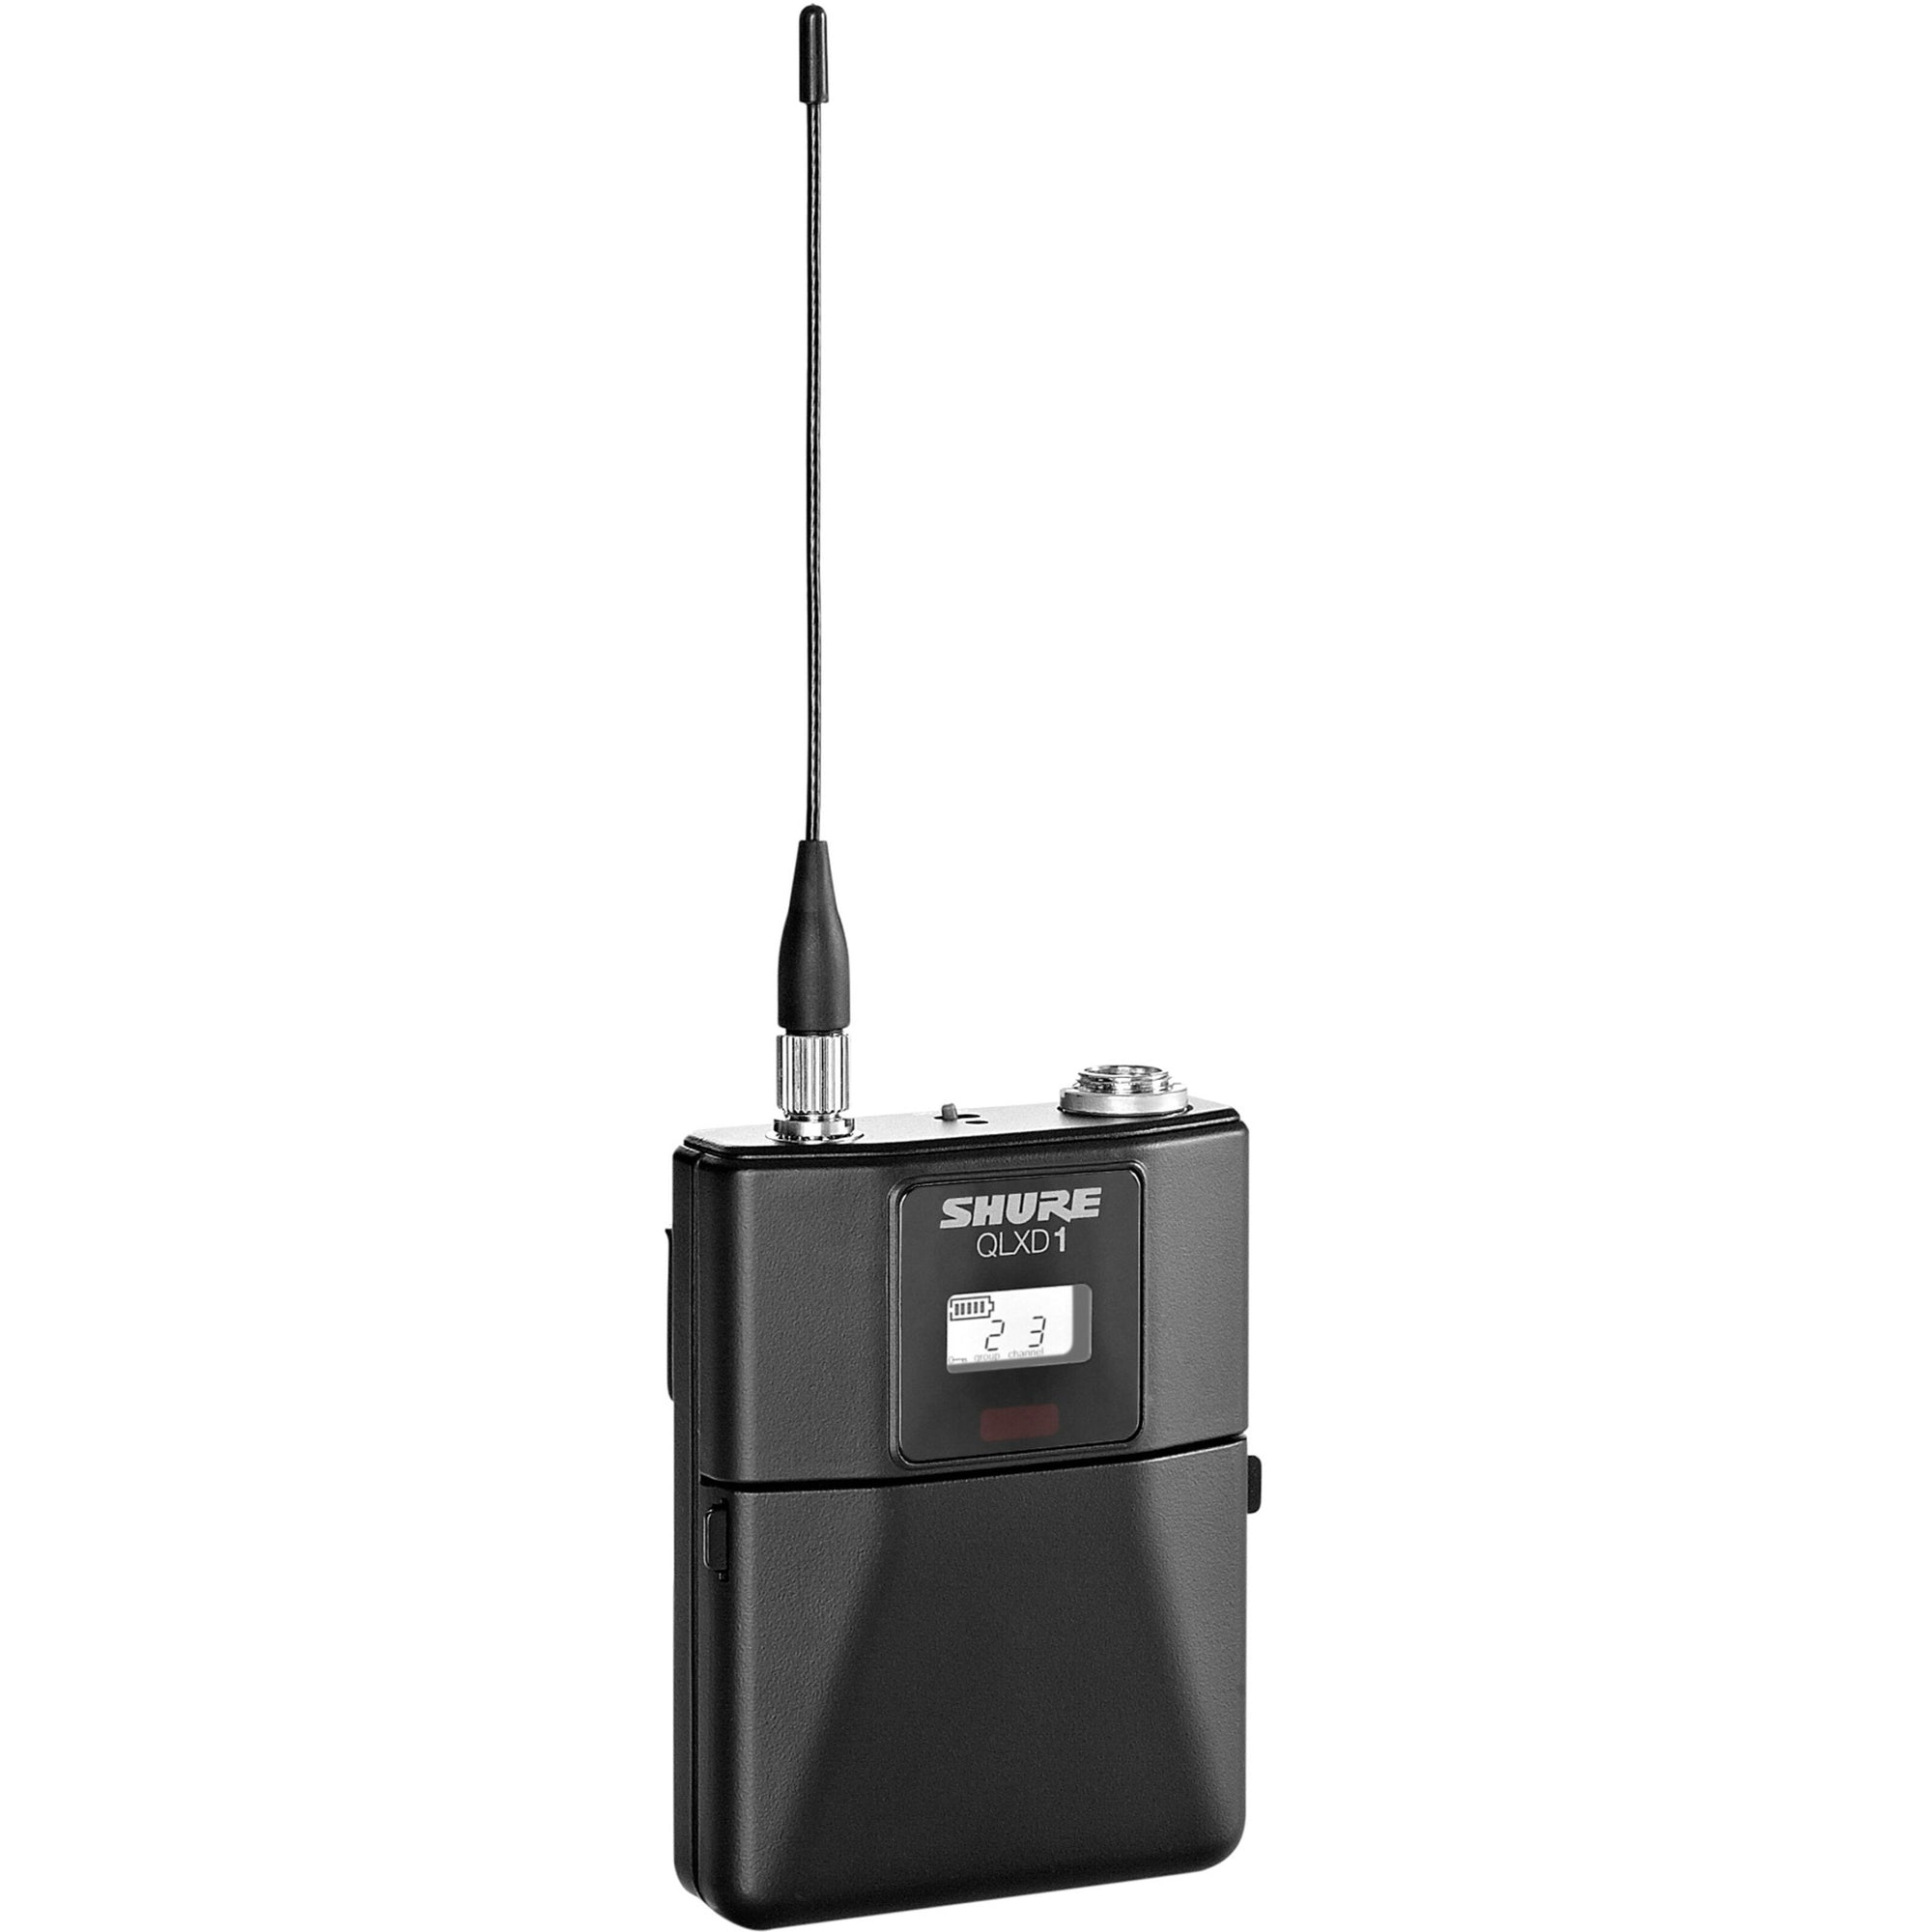 Shure QLXD1483 Wireless System with WL183 Lavalier Microphone, Band J50A (572 - 608 MHz)